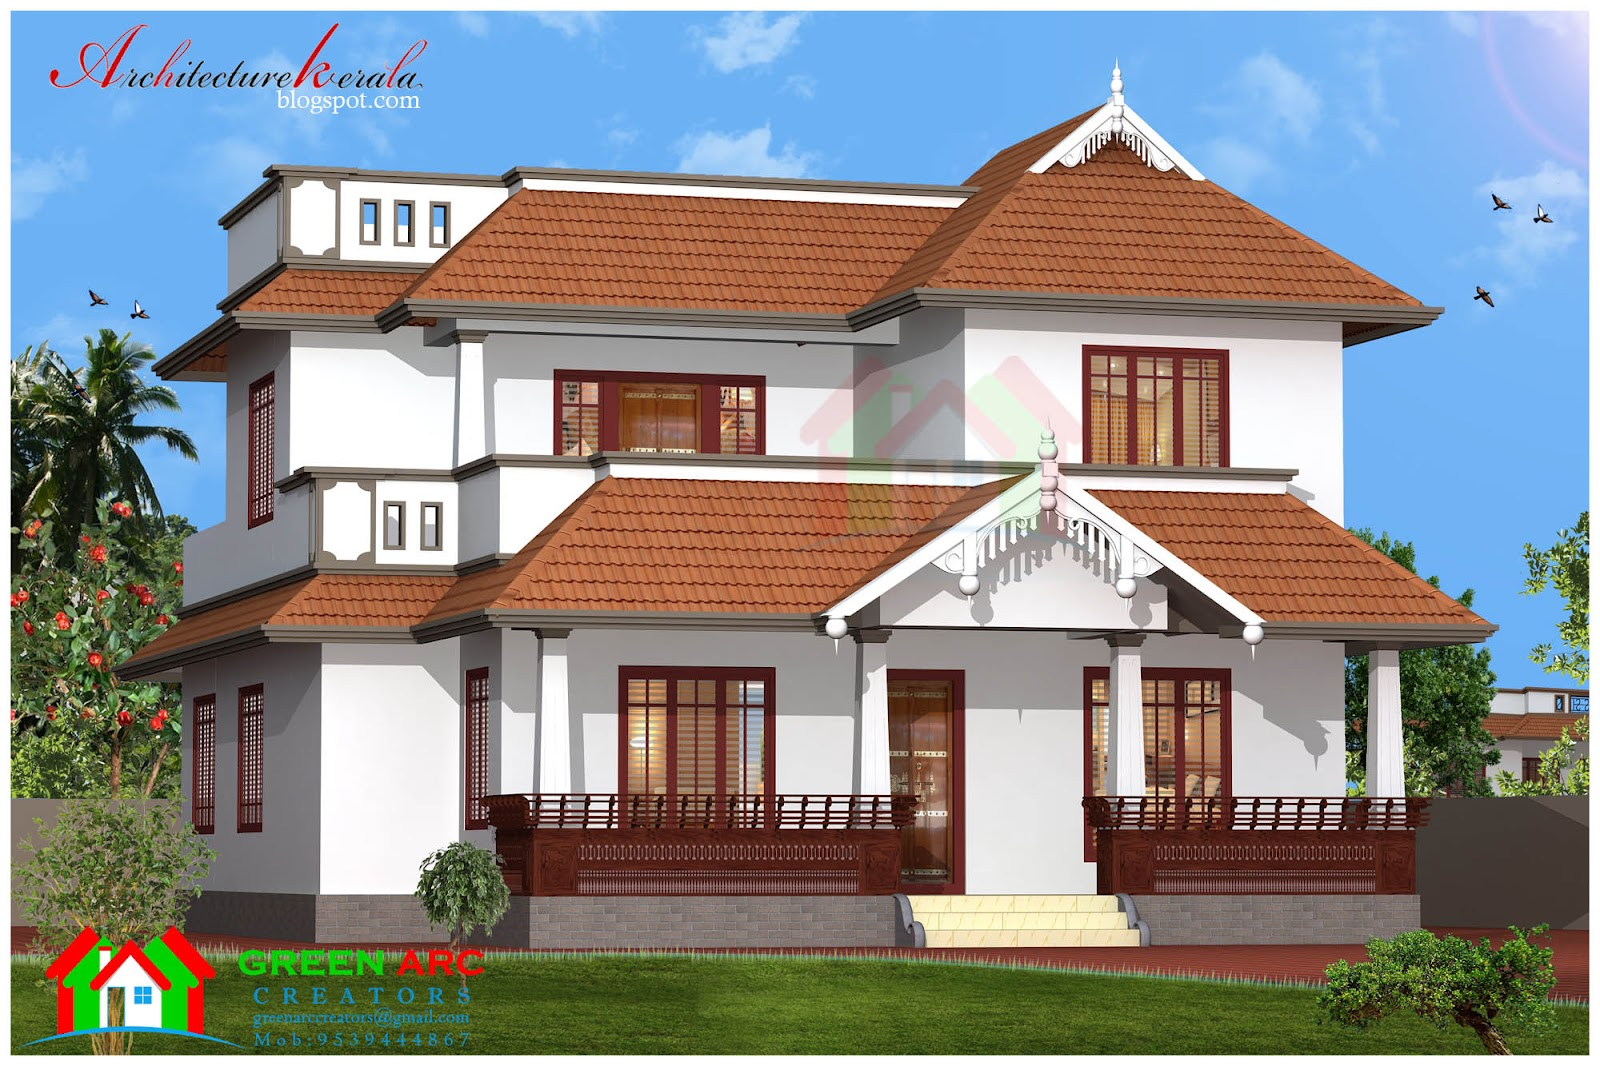 Architecture kerala traditional style kerala house plan for Housing plans kerala